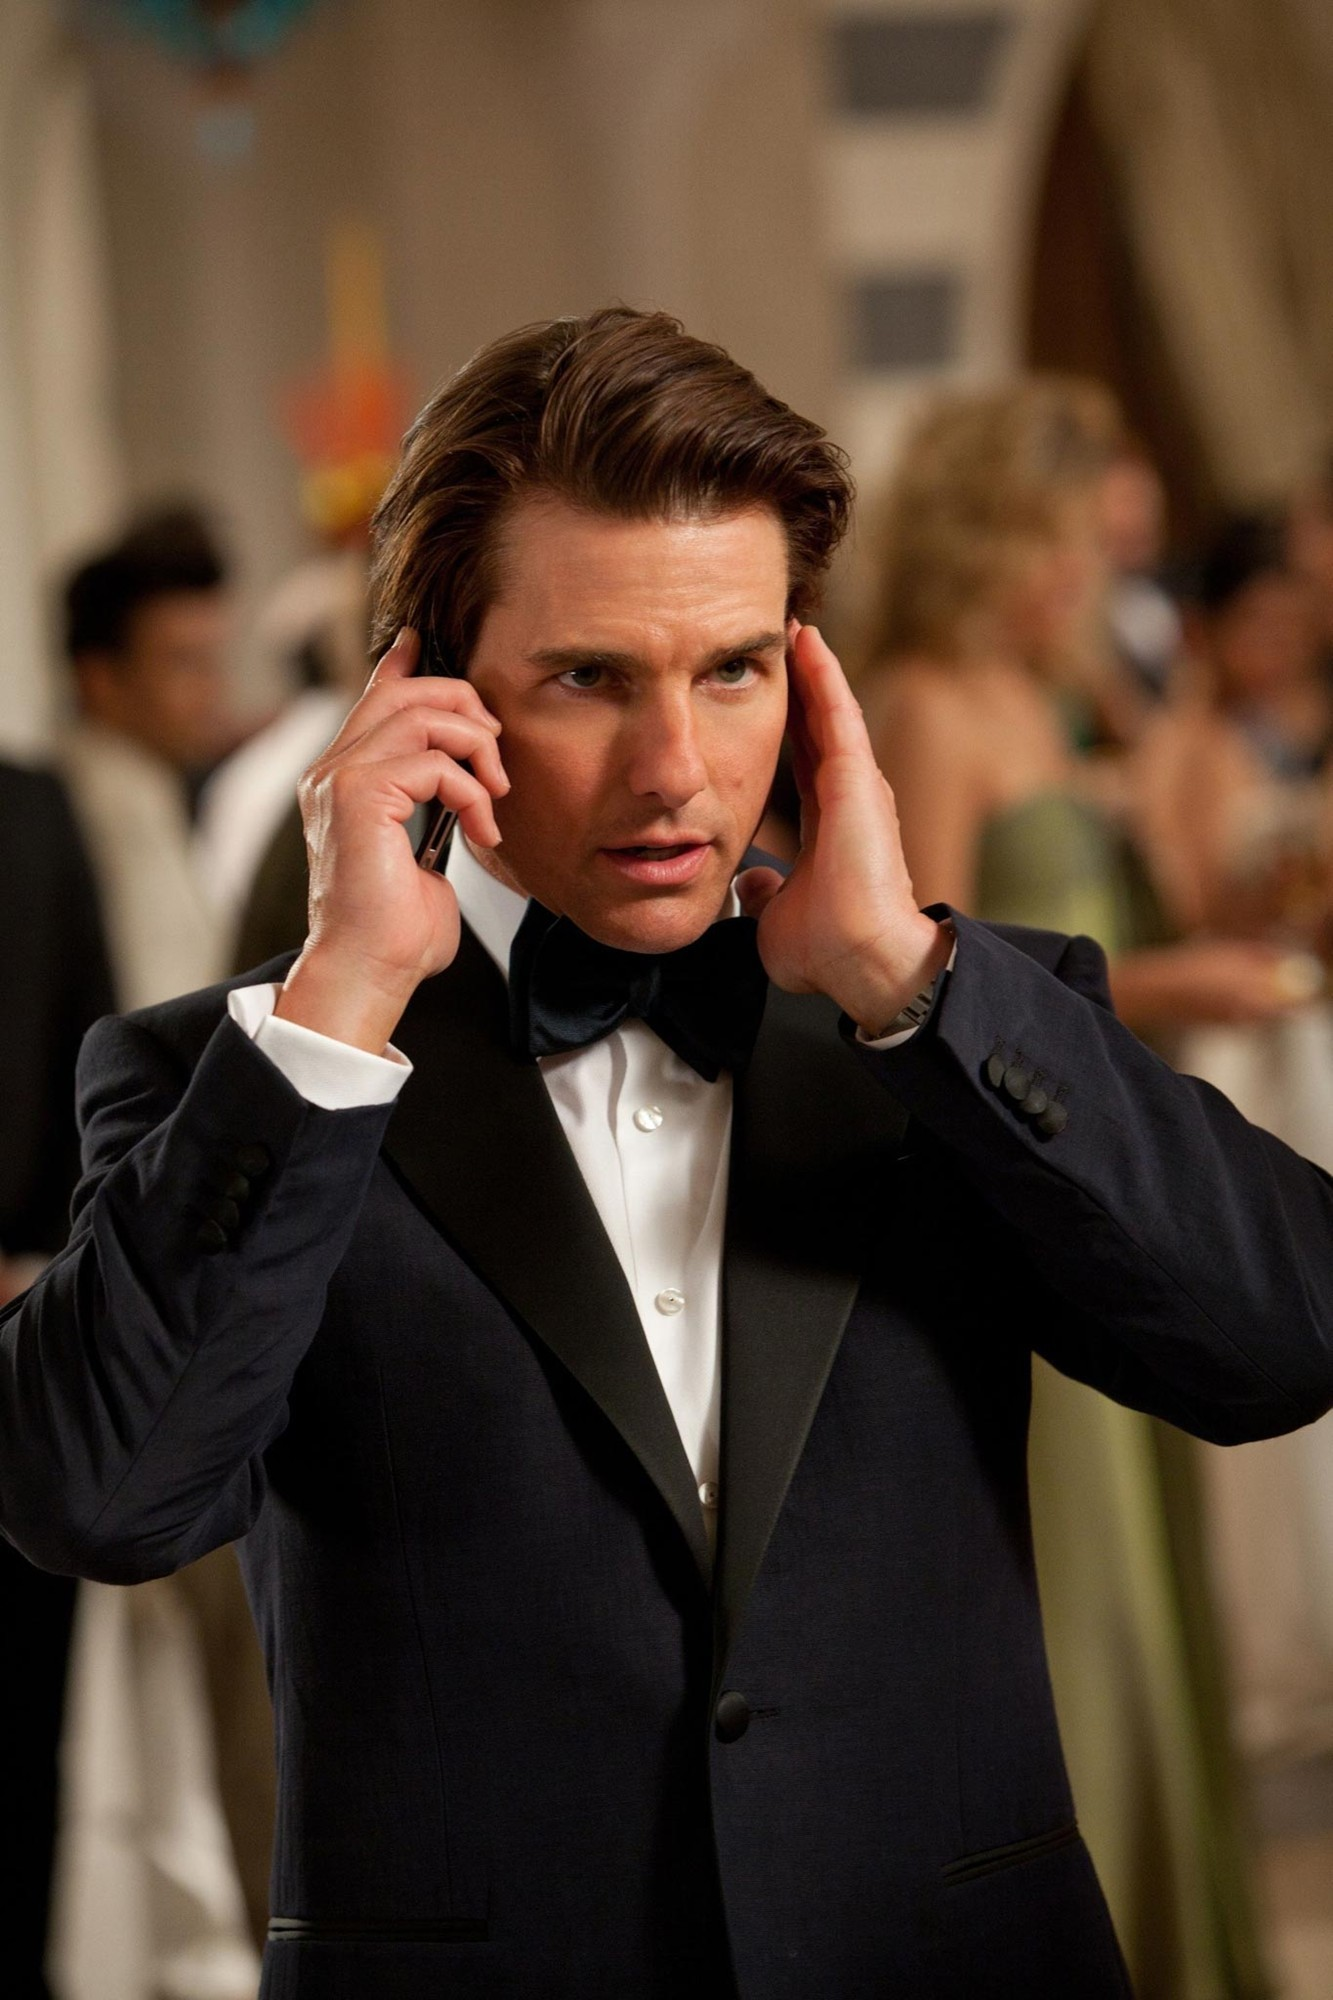 'Mission: Impossible Ghost Protocol' $1 Billion Lawsuit Dismissed